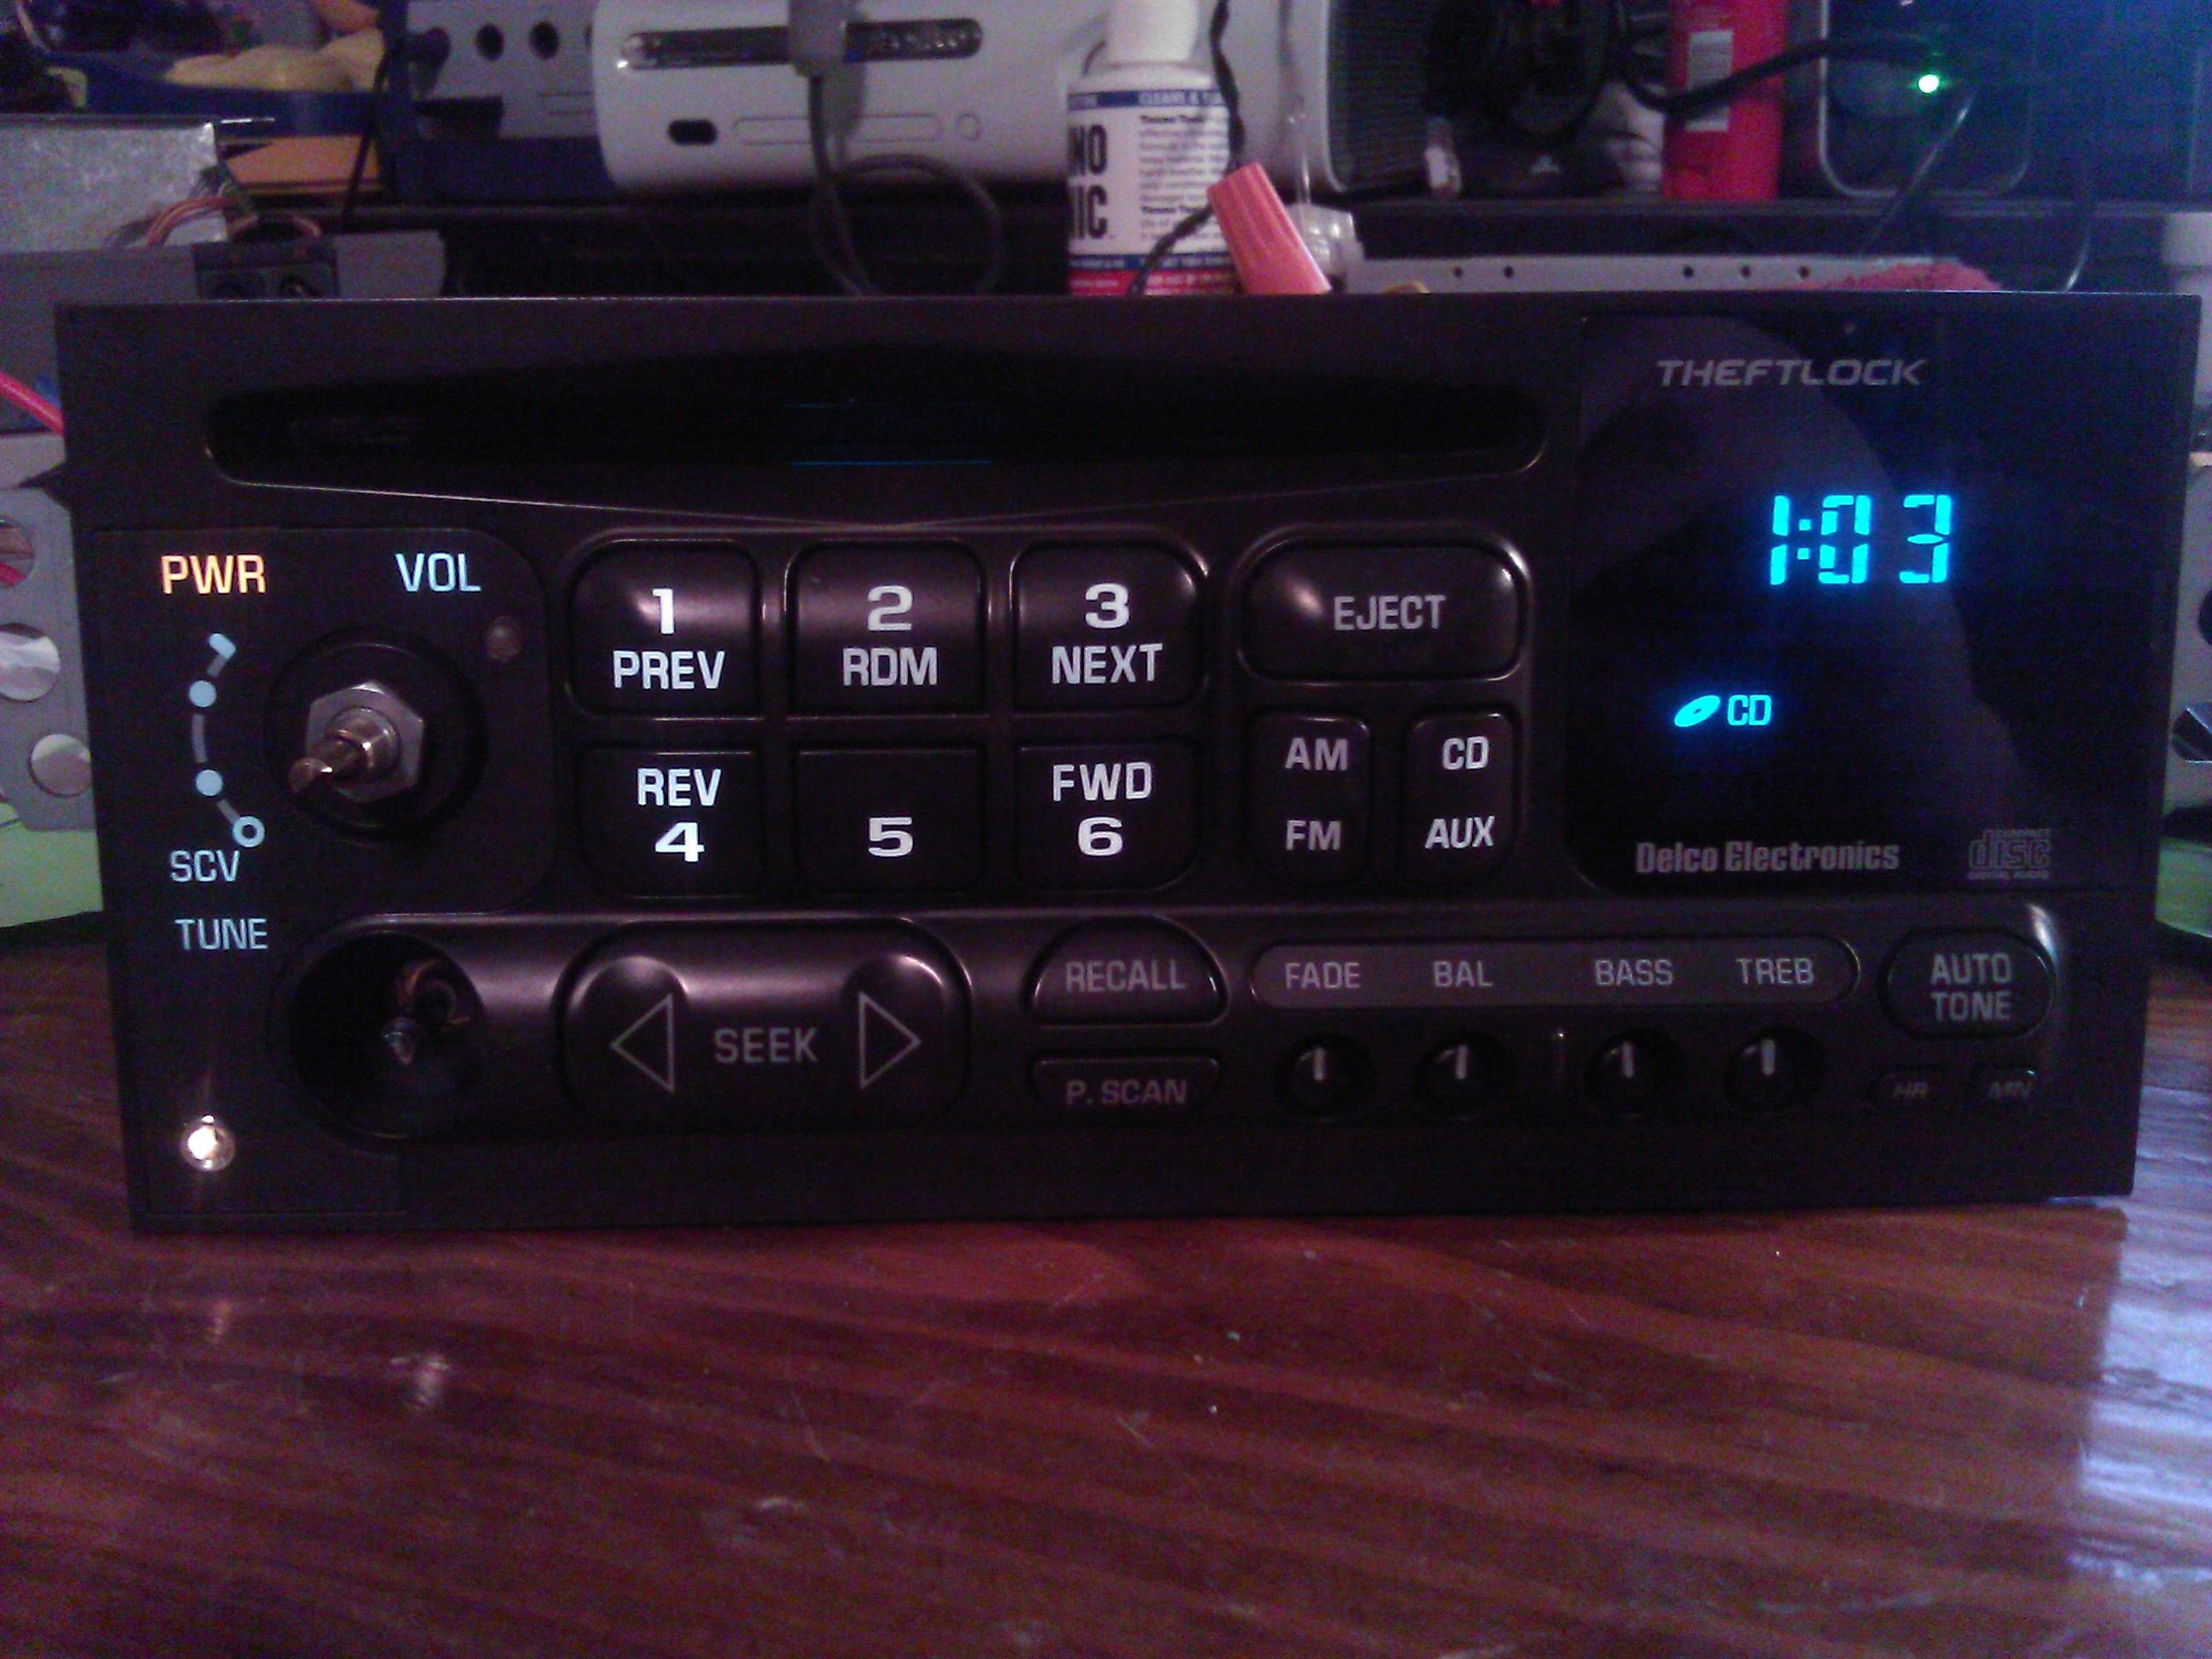 [SCHEMATICS_48EU]  HOW-TO: AUX Port in your OE Delco Stereo! (Picture Heavy) | S-10 Forum | Delco Radio Wiring Diagram 15071233 |  | S10 Forum